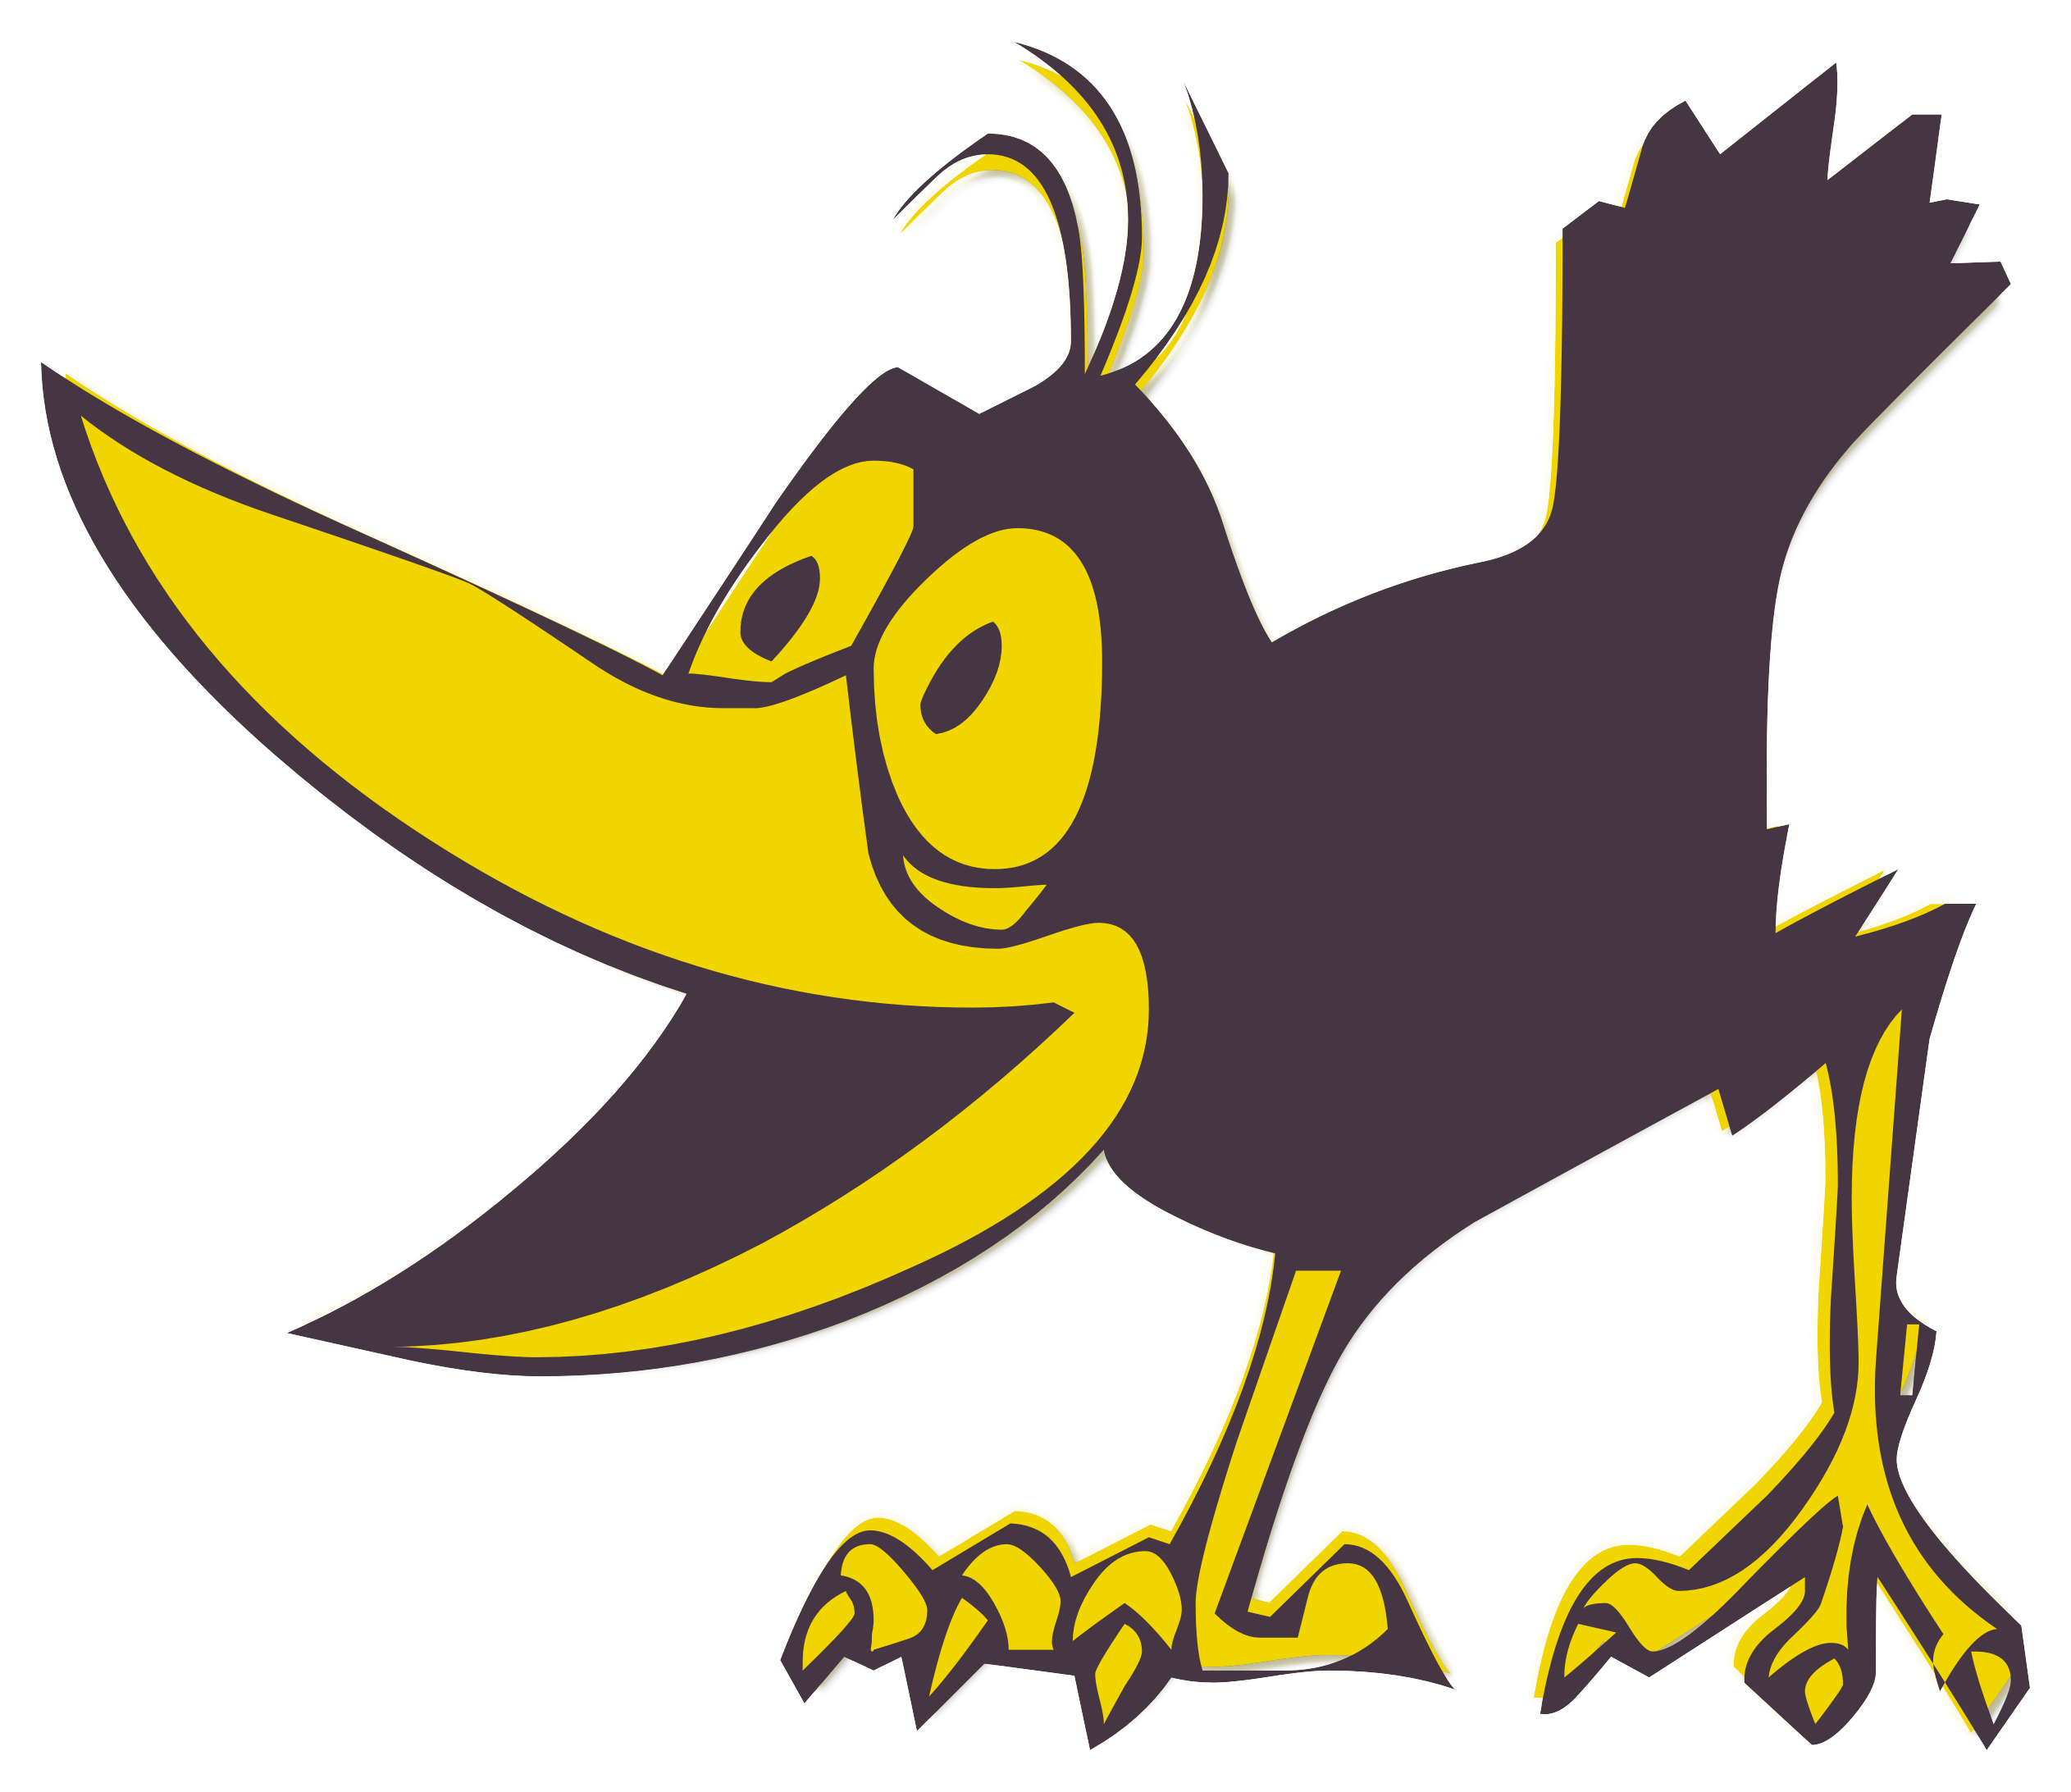 Pet clipart yellow bird. Free photo funny graphic